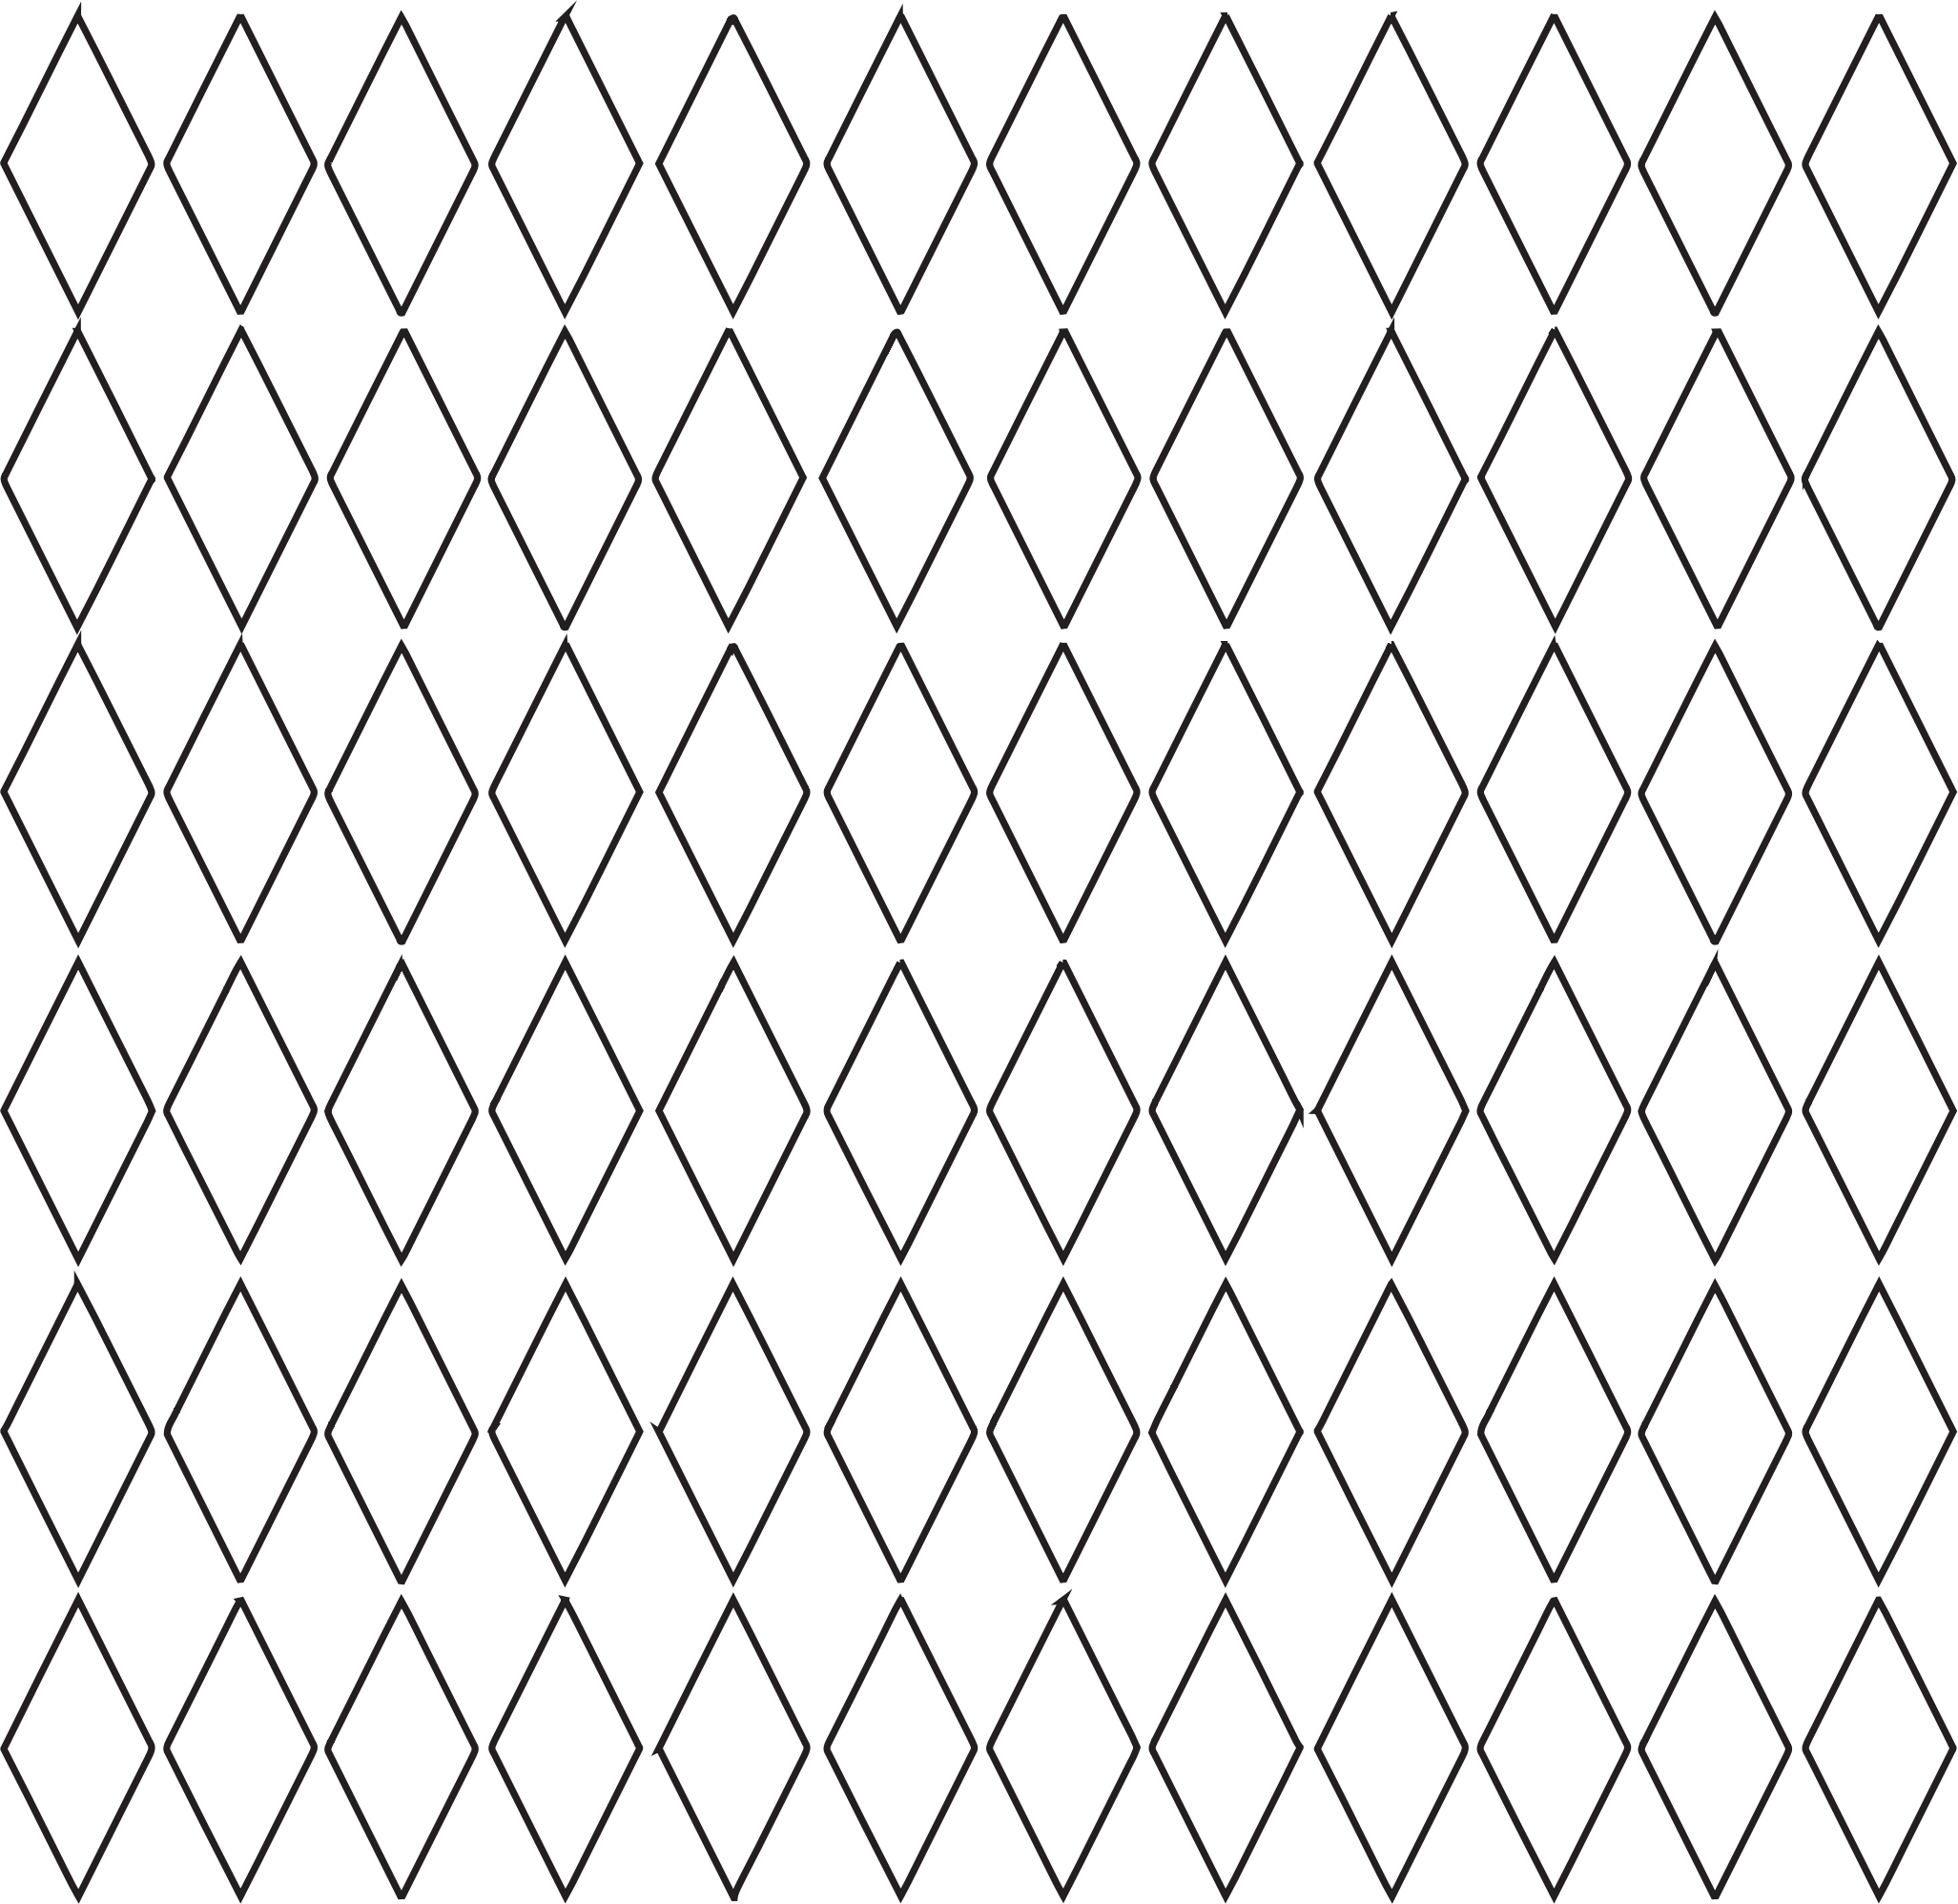 Grid floor png. Diamond pattern no color